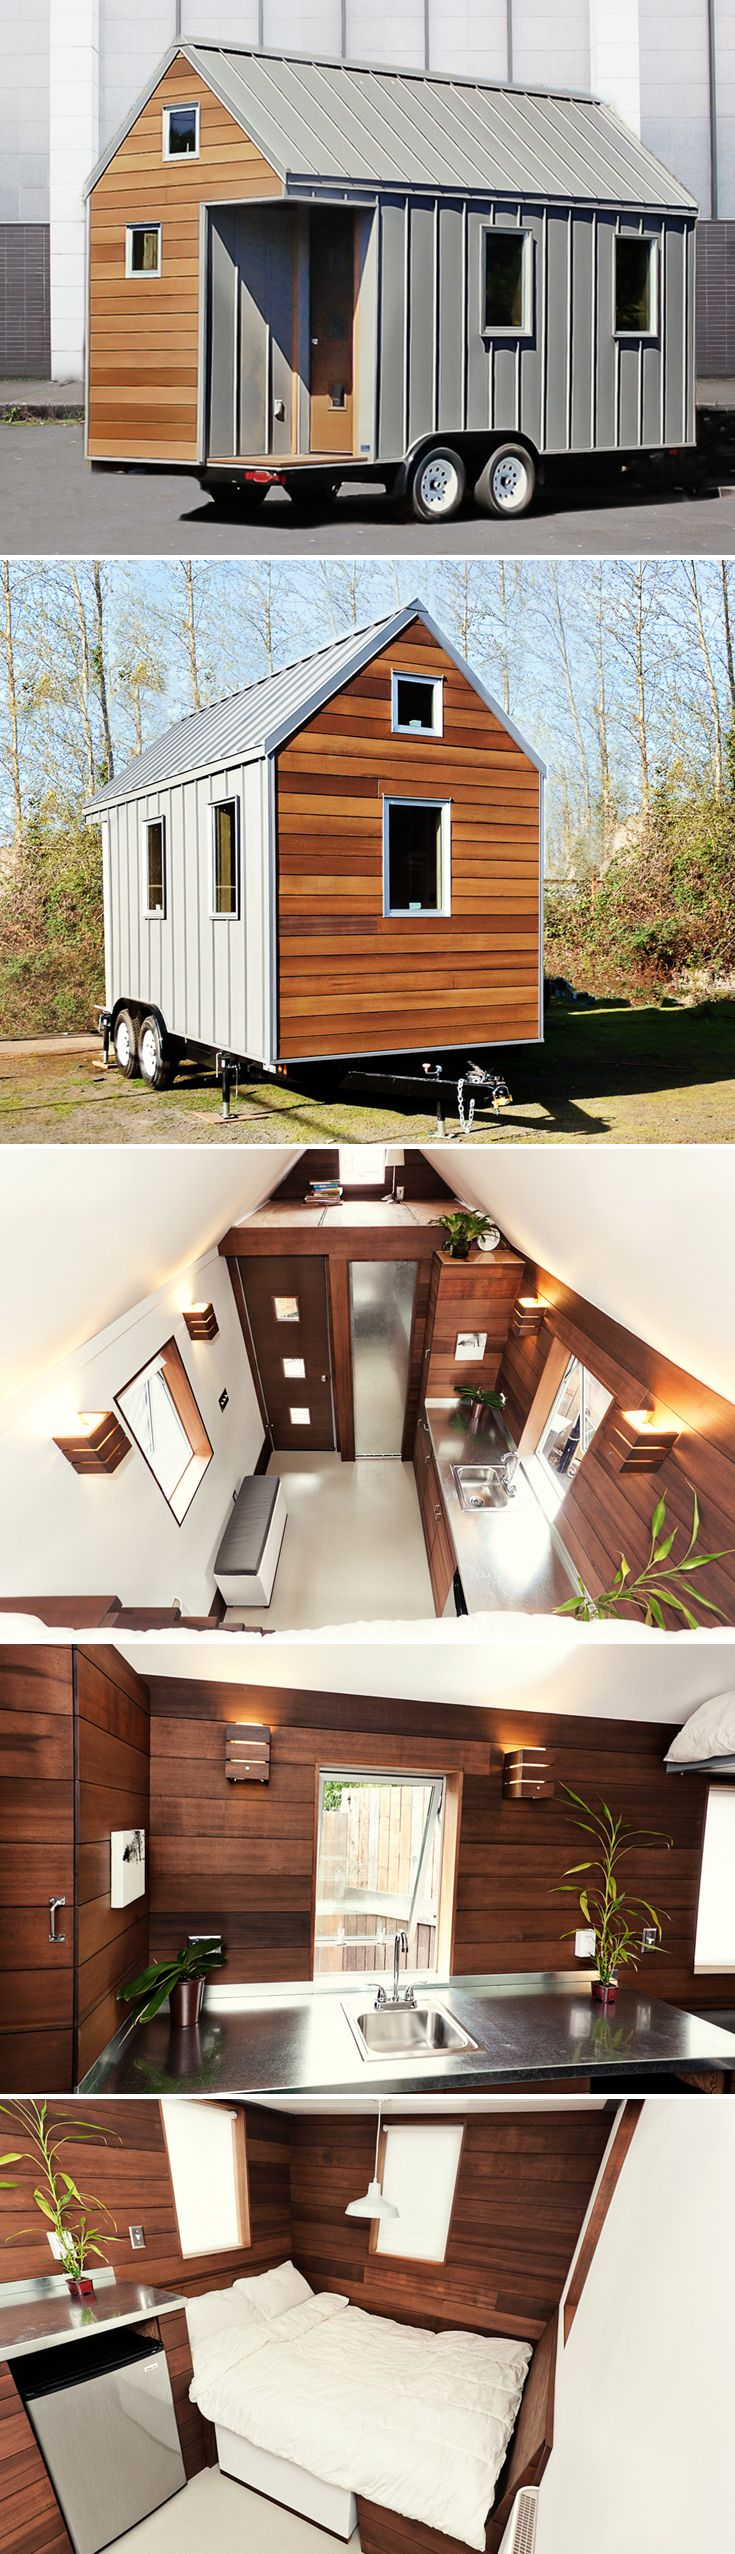 A 16' tiny house with reclaimed woods and metals on both the exterior and interior. The modern, simple design was created to be extremely energy efficient.